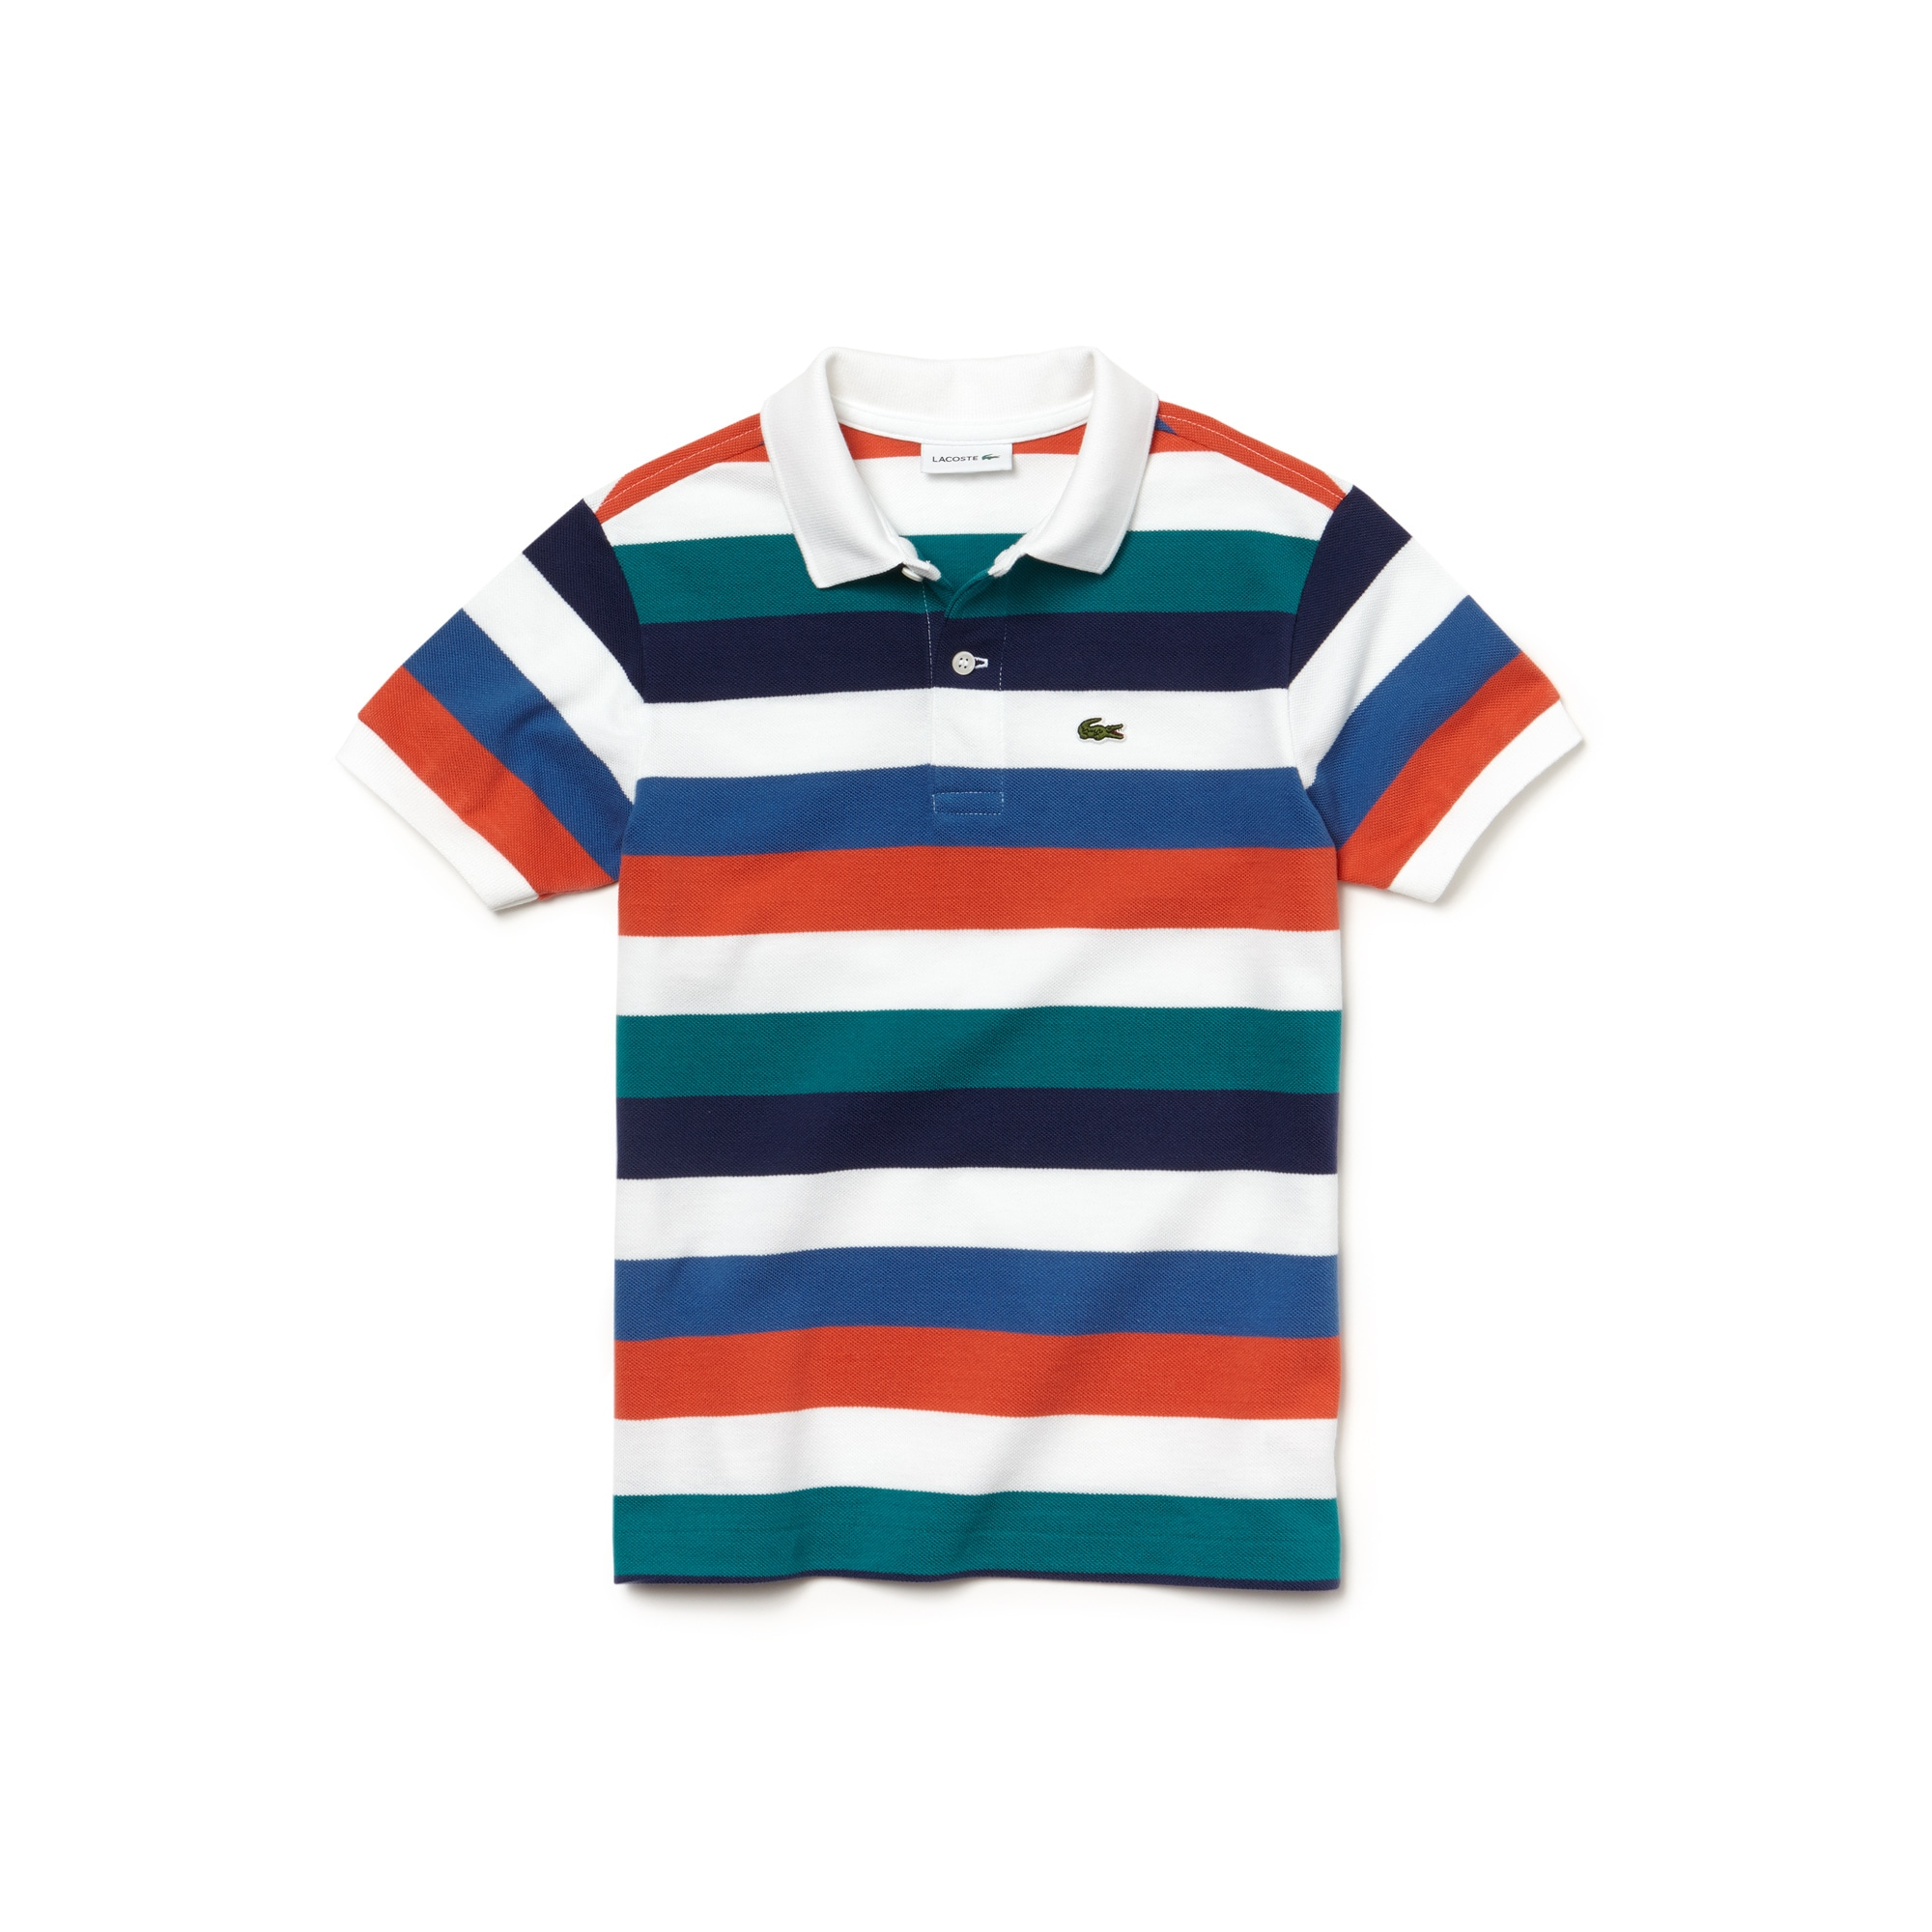 9b5794445 Boy's Polo Shirts | The Lacoste Polo For Kids | LACOSTE